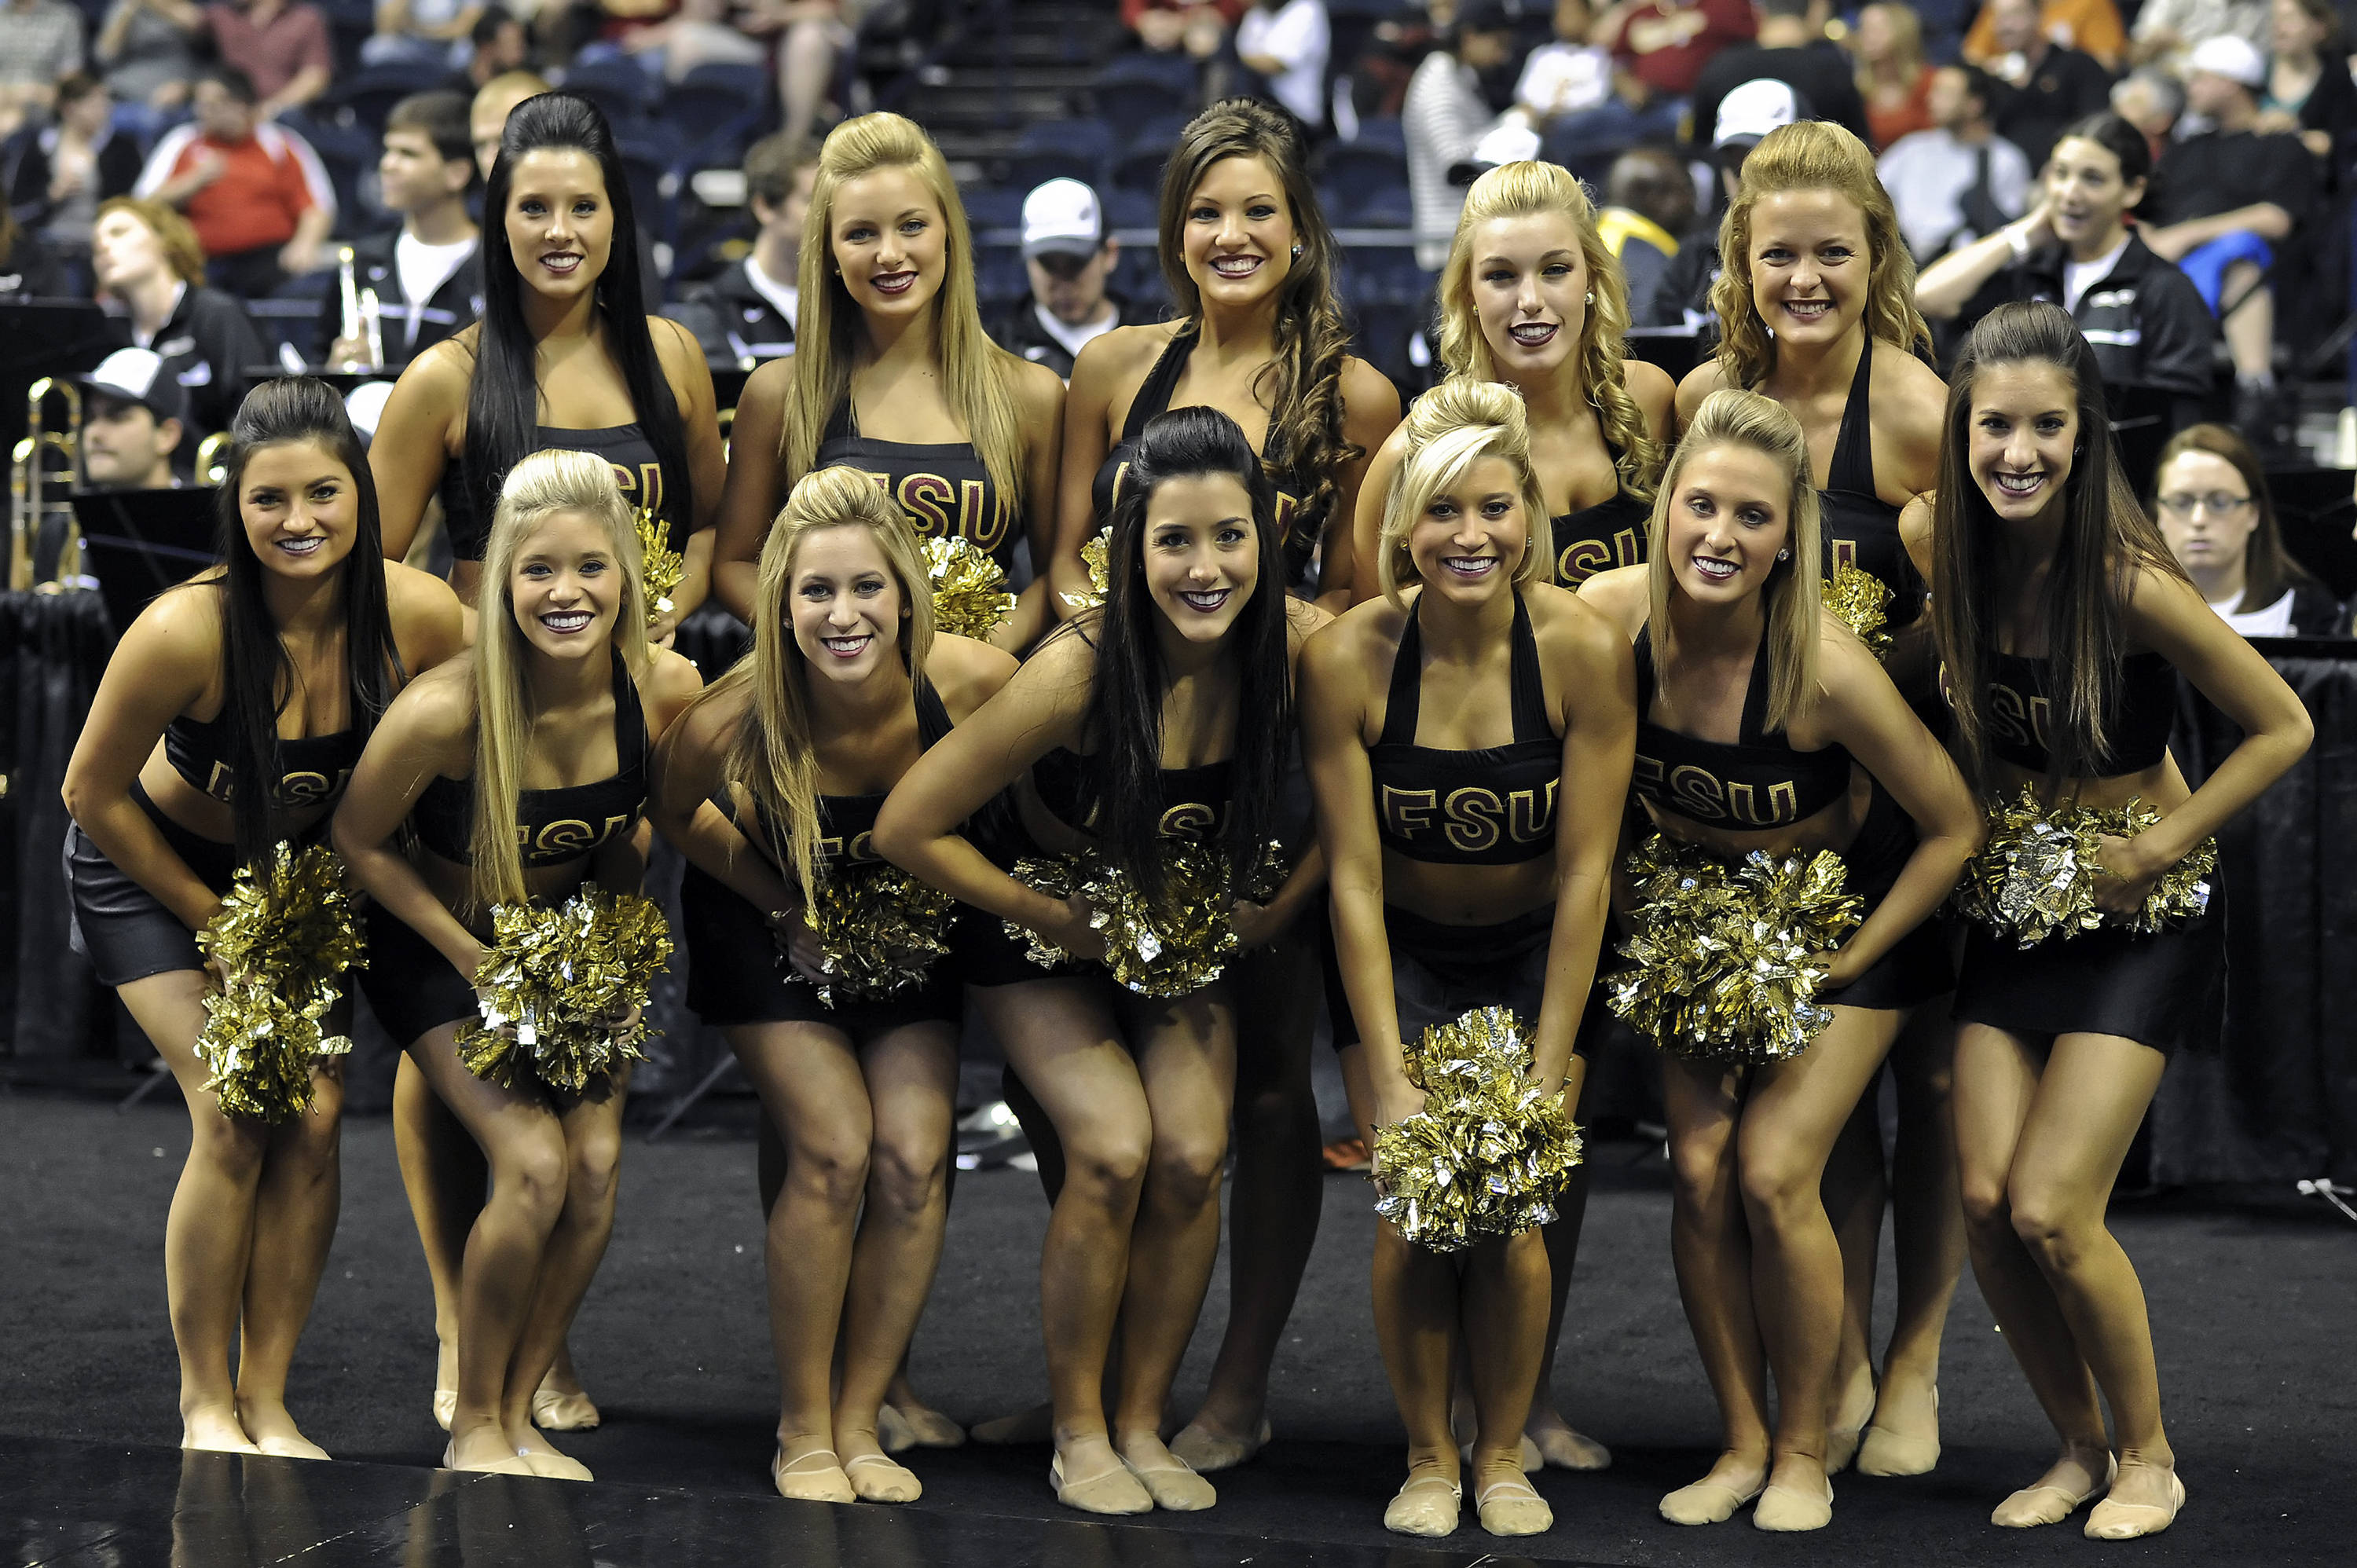 The Florida State Golden Girls.